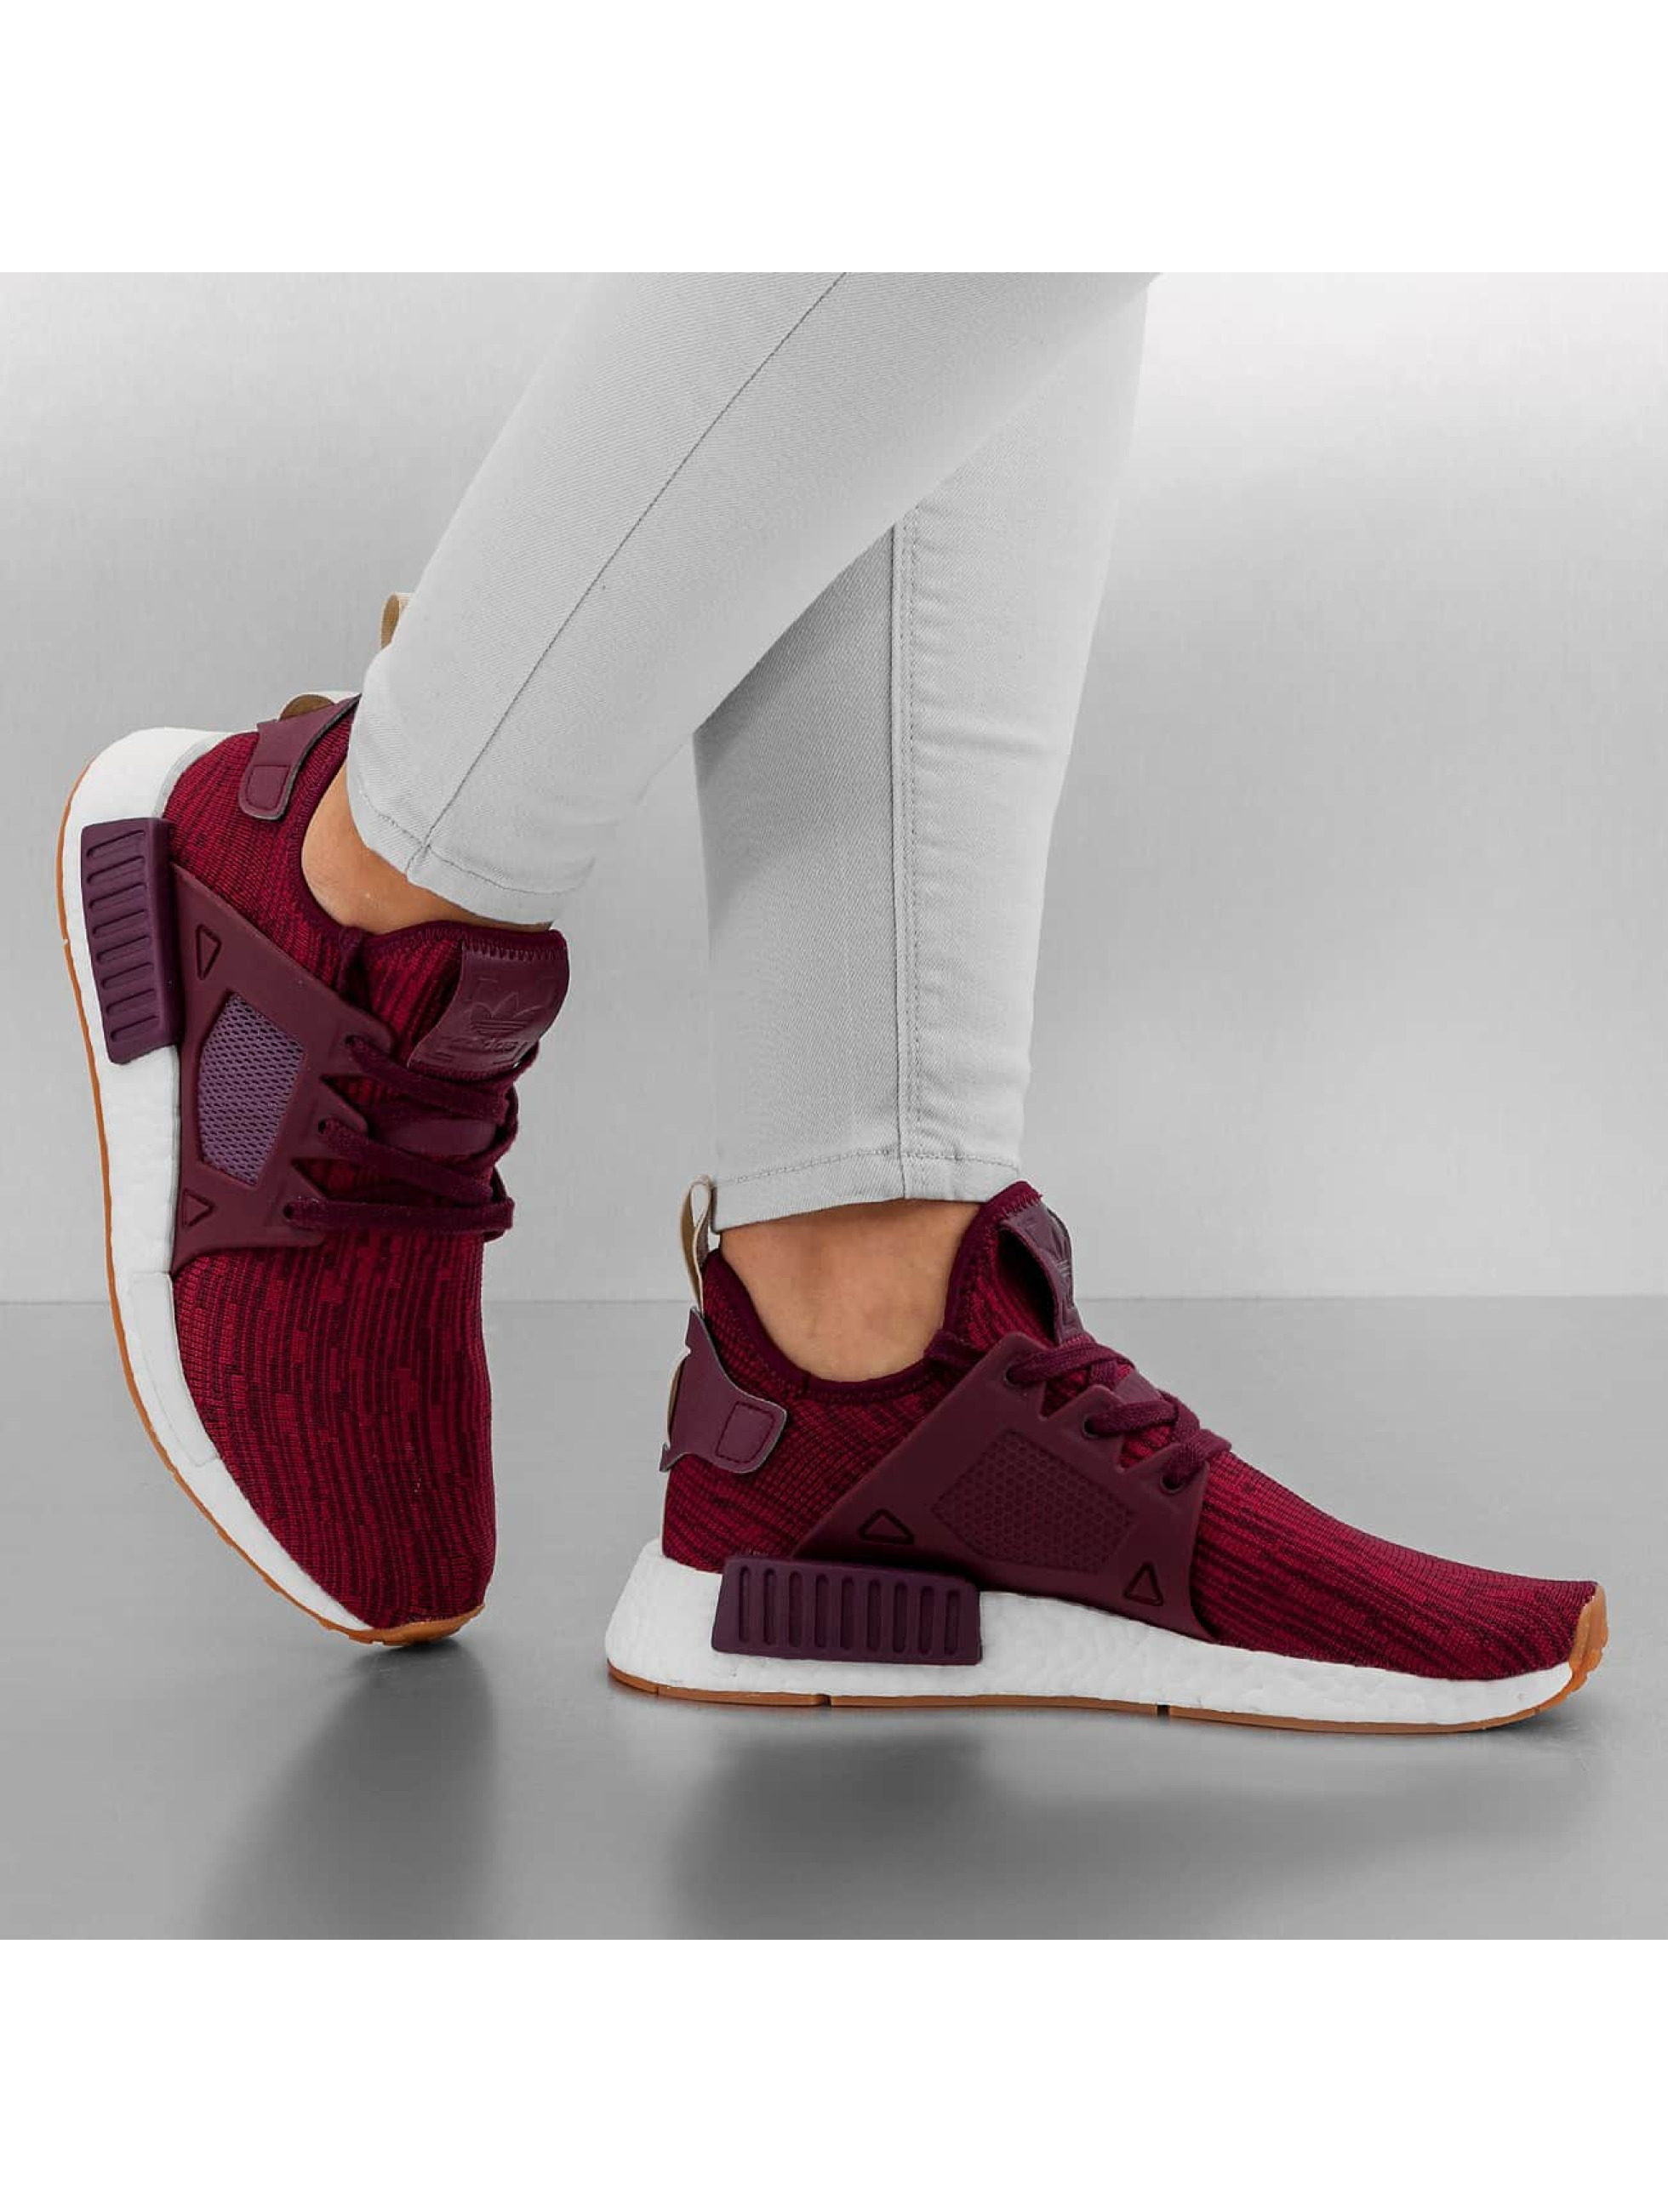 adidas nmd schwarz burgundy. Black Bedroom Furniture Sets. Home Design Ideas